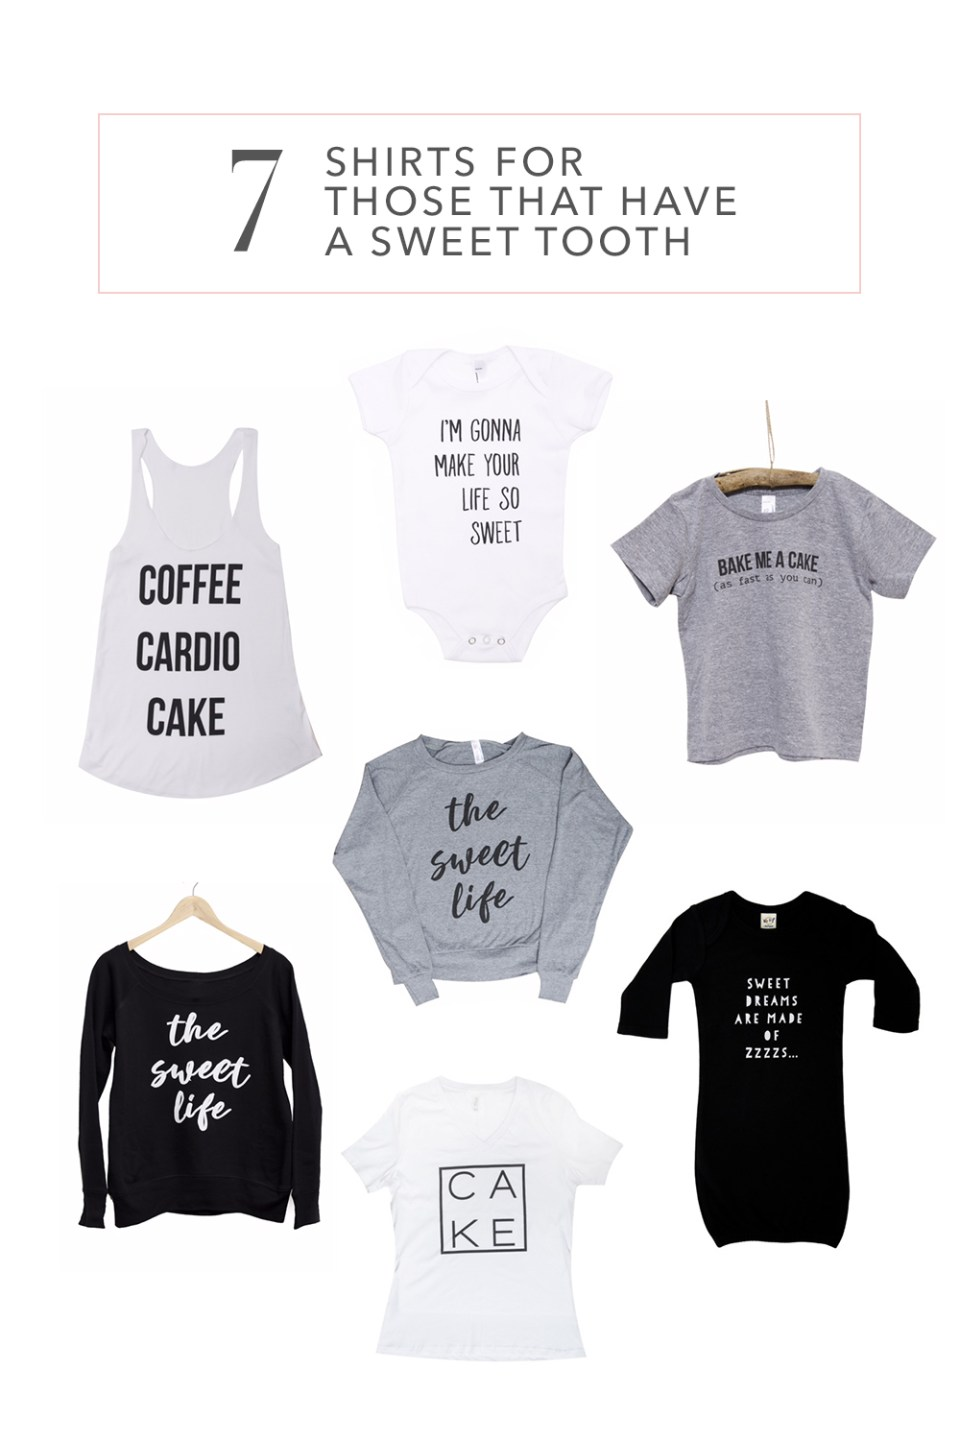 7 Shirts for those with a Sweet Tooth | Treat Inspirired shirts by The Sweet Life Apparel